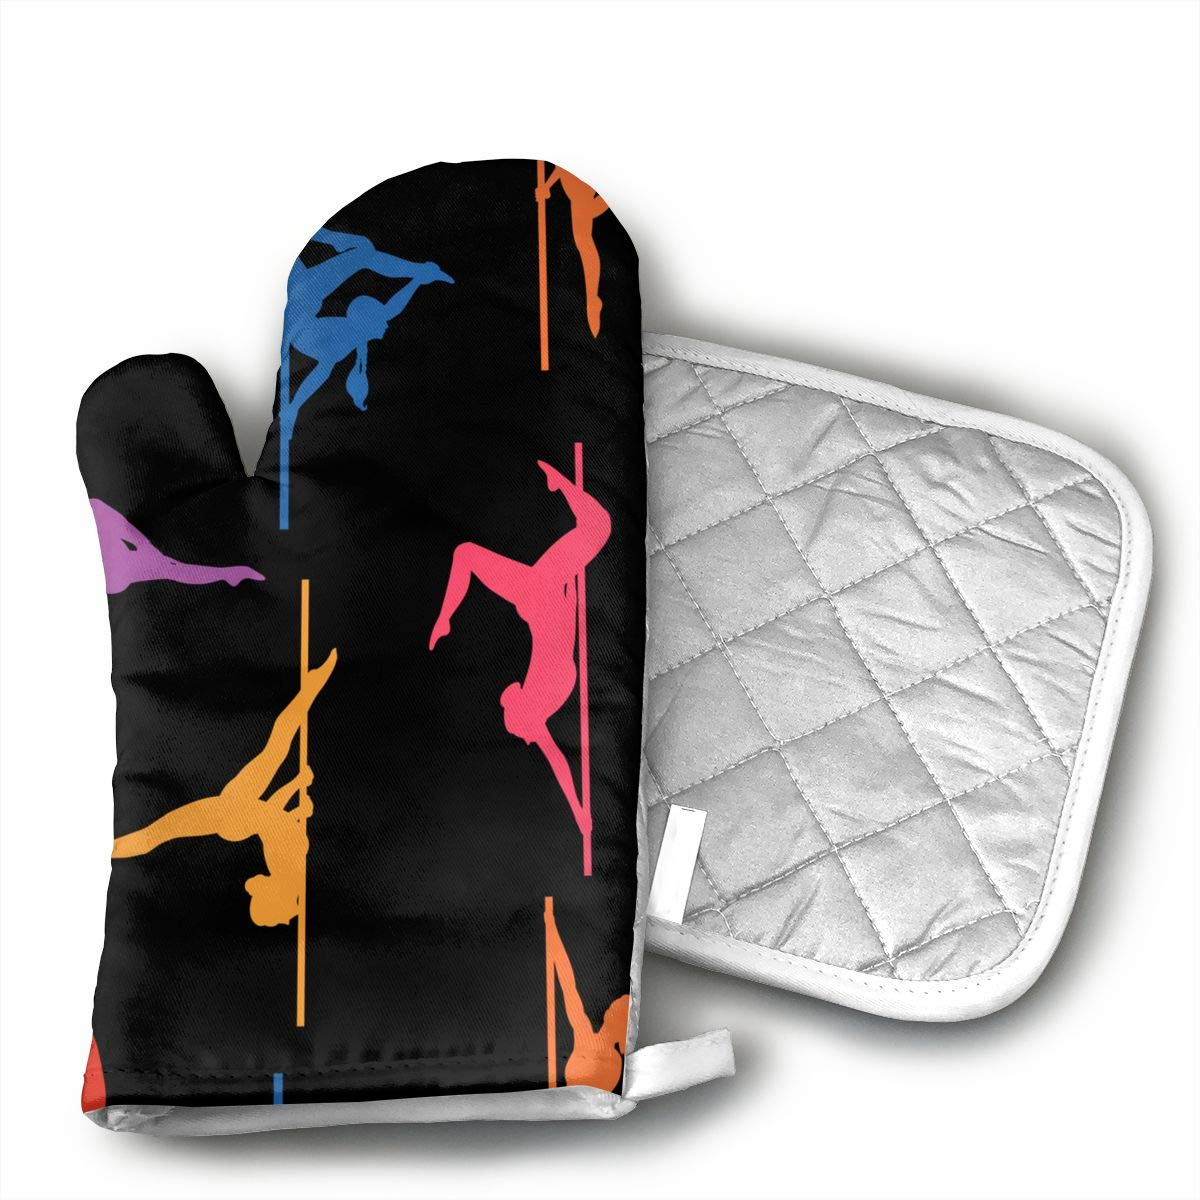 GRSTsys Pole Dance Oven Mitts Heat Resistant to 504 Degrees Kitchen Gloves,Flame Oven Mitt Set